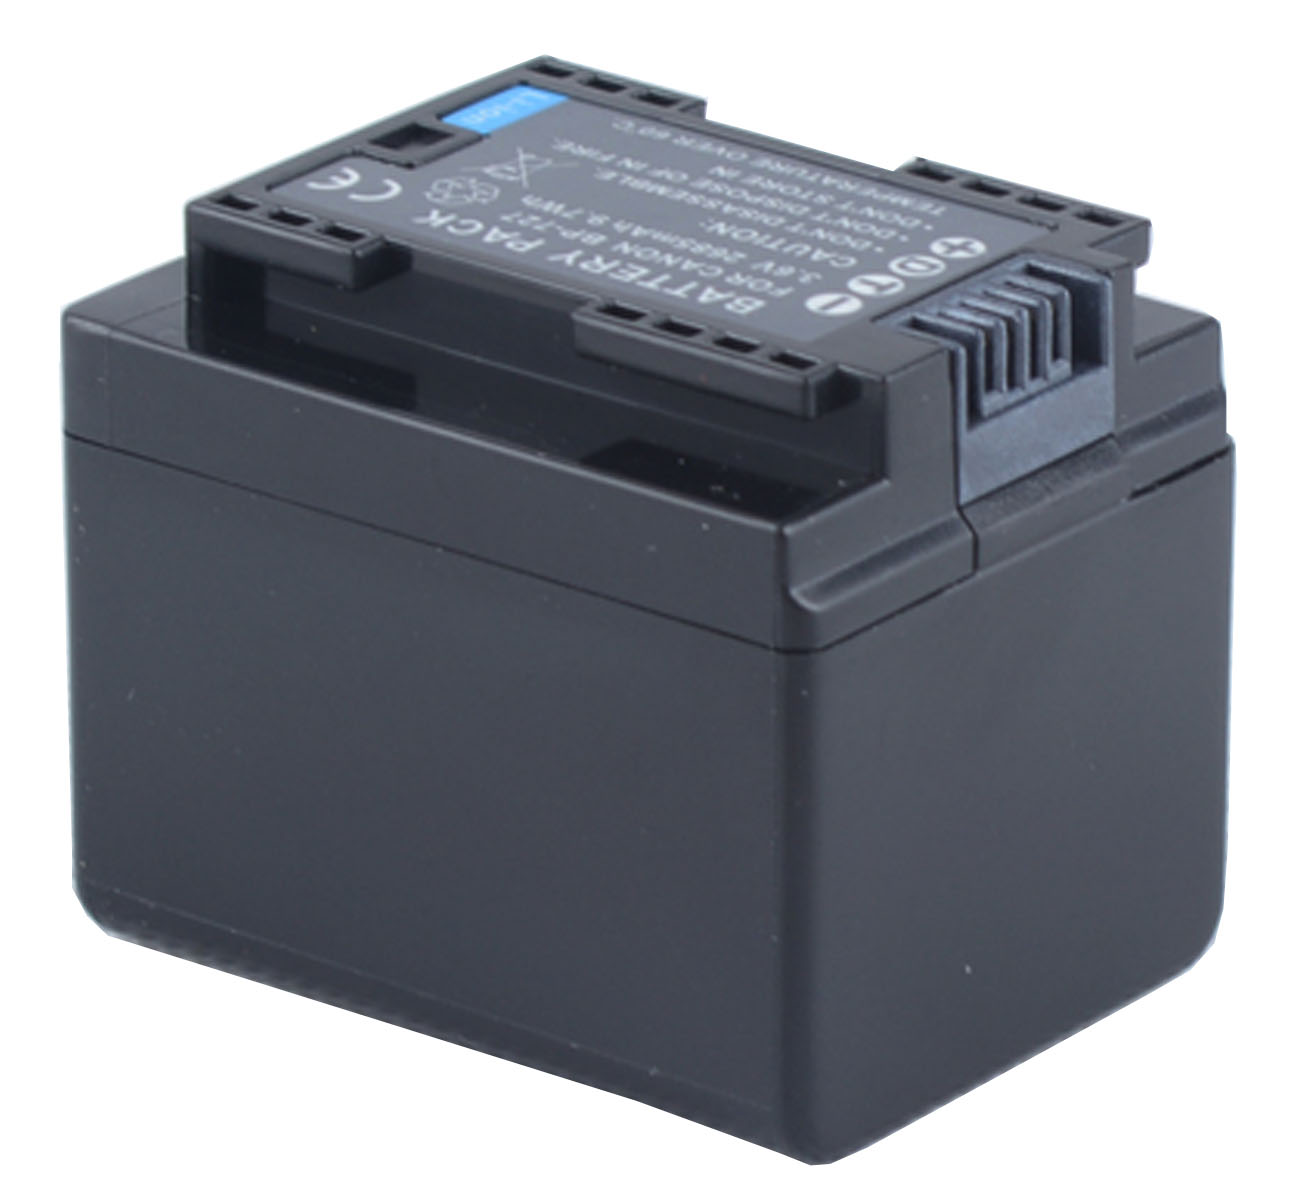 Battery Pack For Canon VIXIA HF R300, R400, R500, R600, R700, R800, HFR600, HFR700, HFR800, HF M50, M52, M500 HD Camcorder